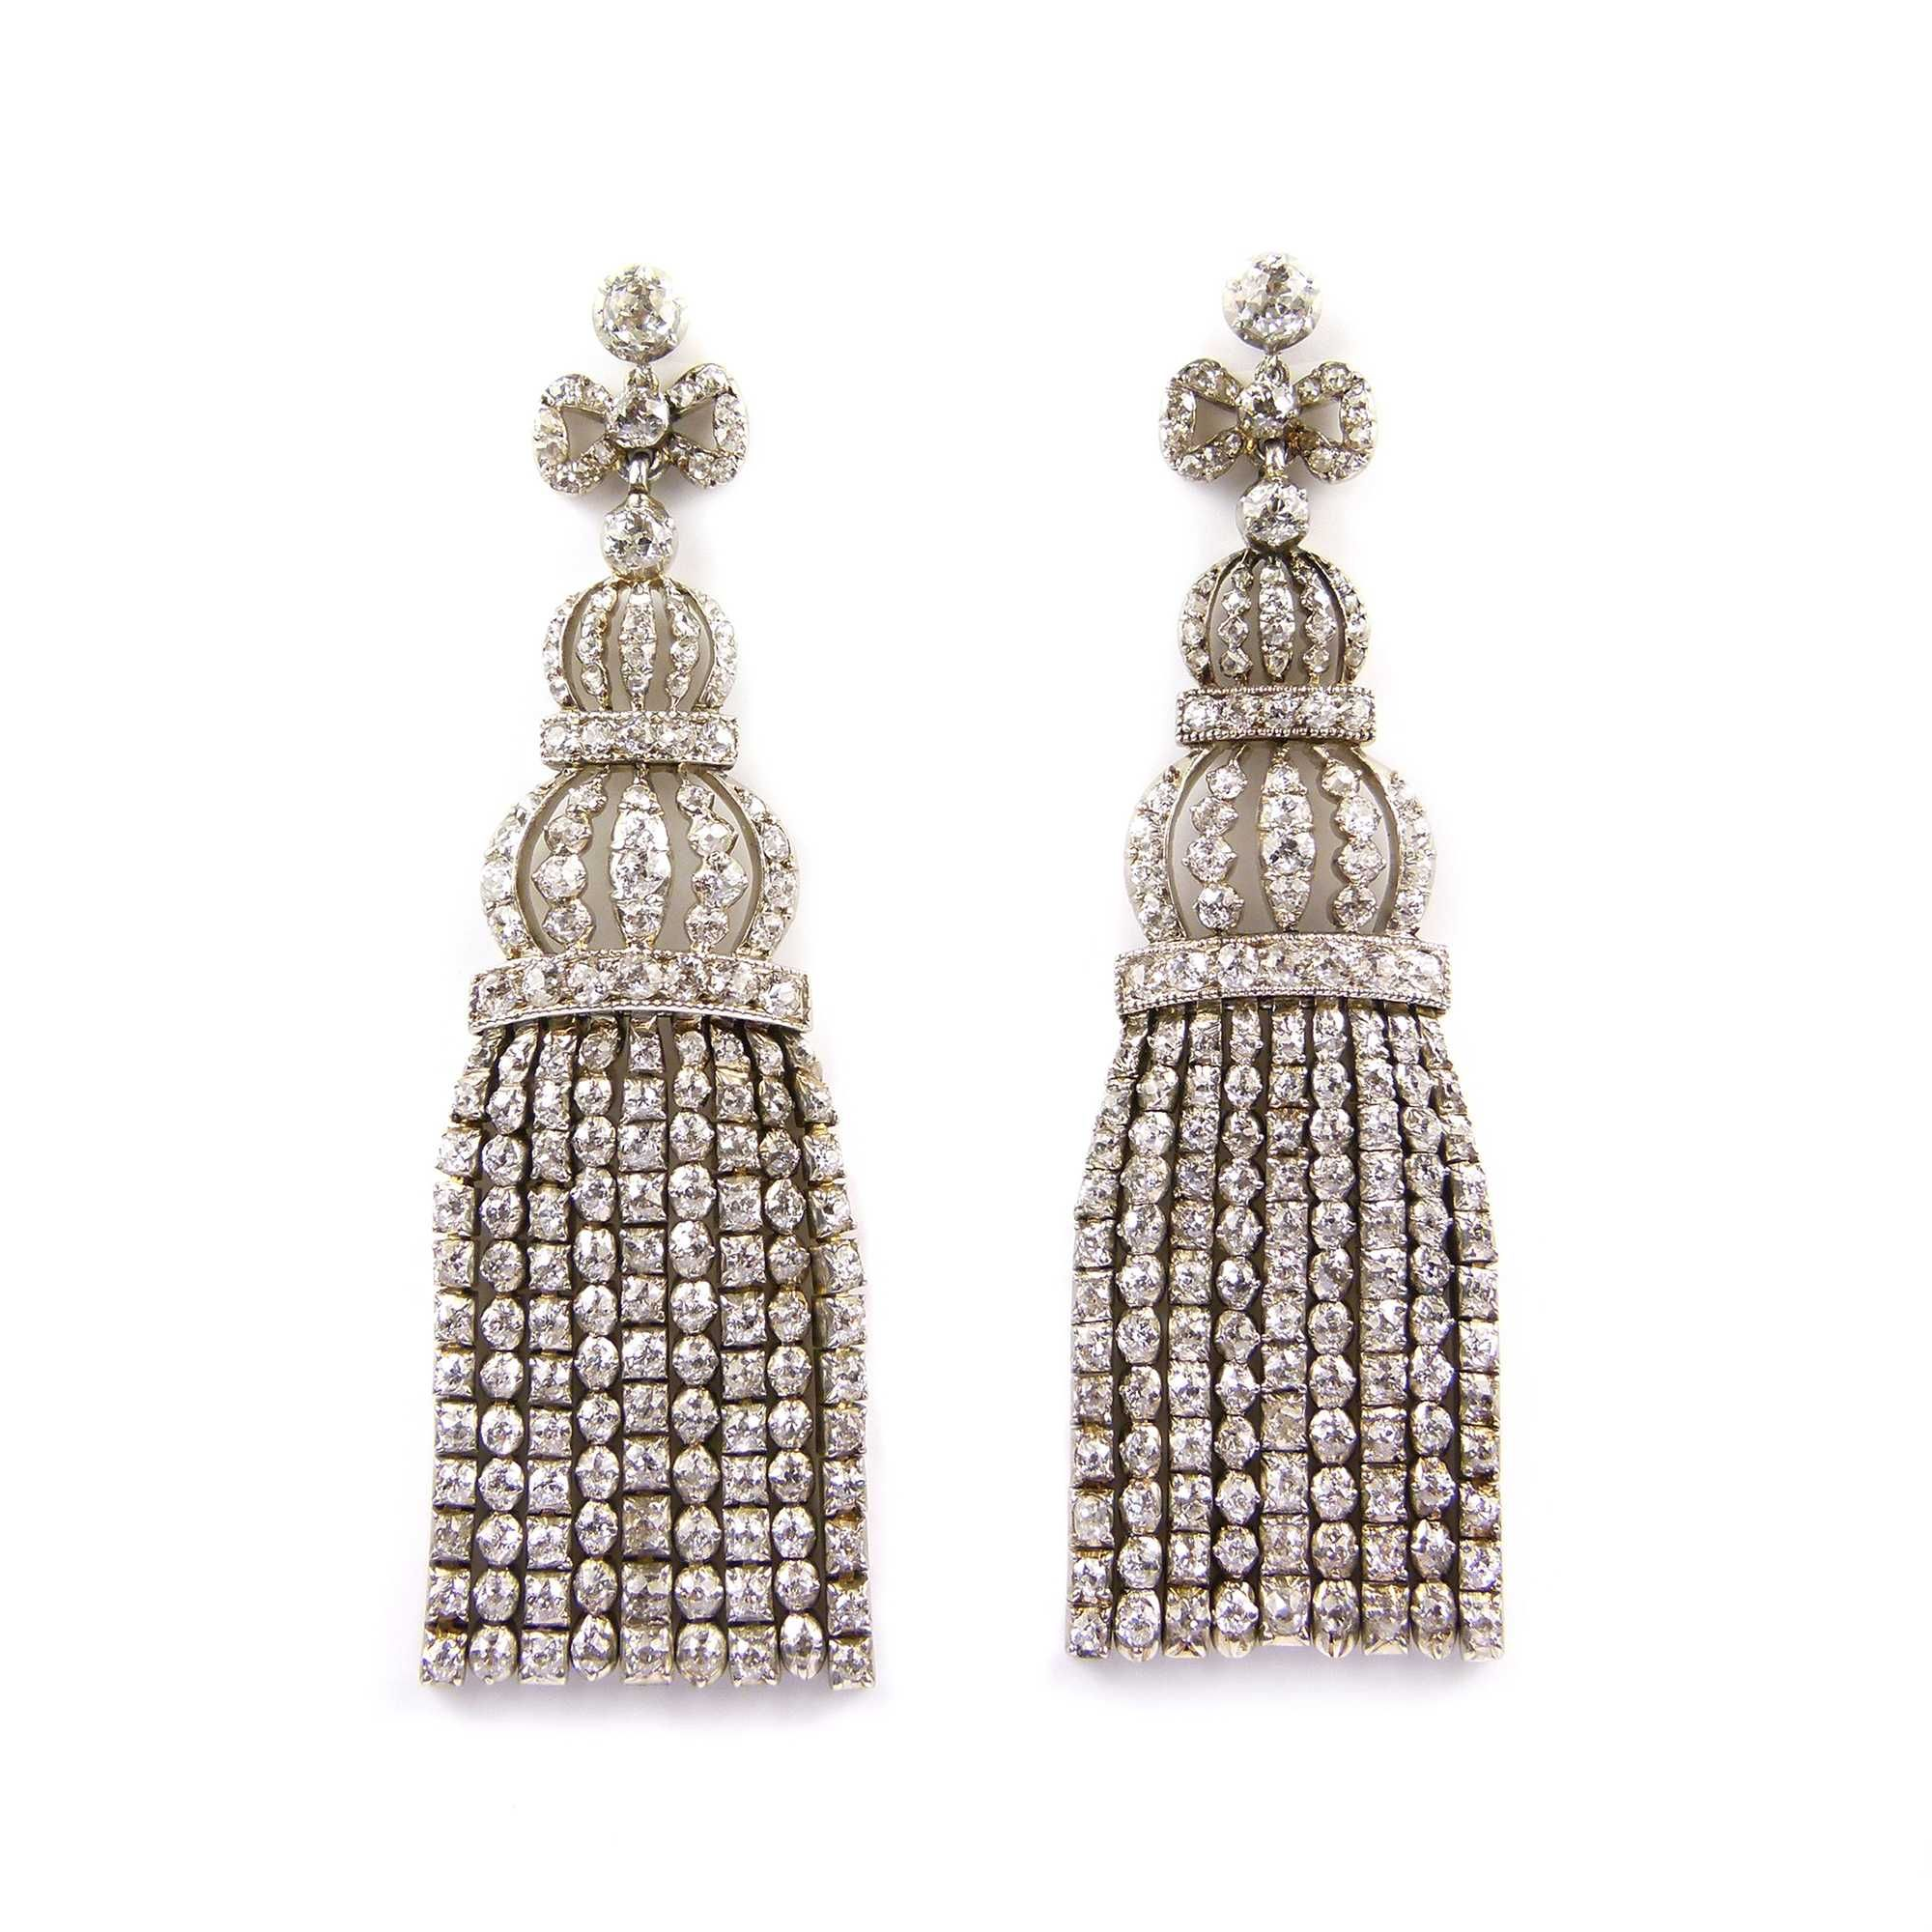 pearl screw fittings s vintage earrings luxury website antique diamond jewellry platinum